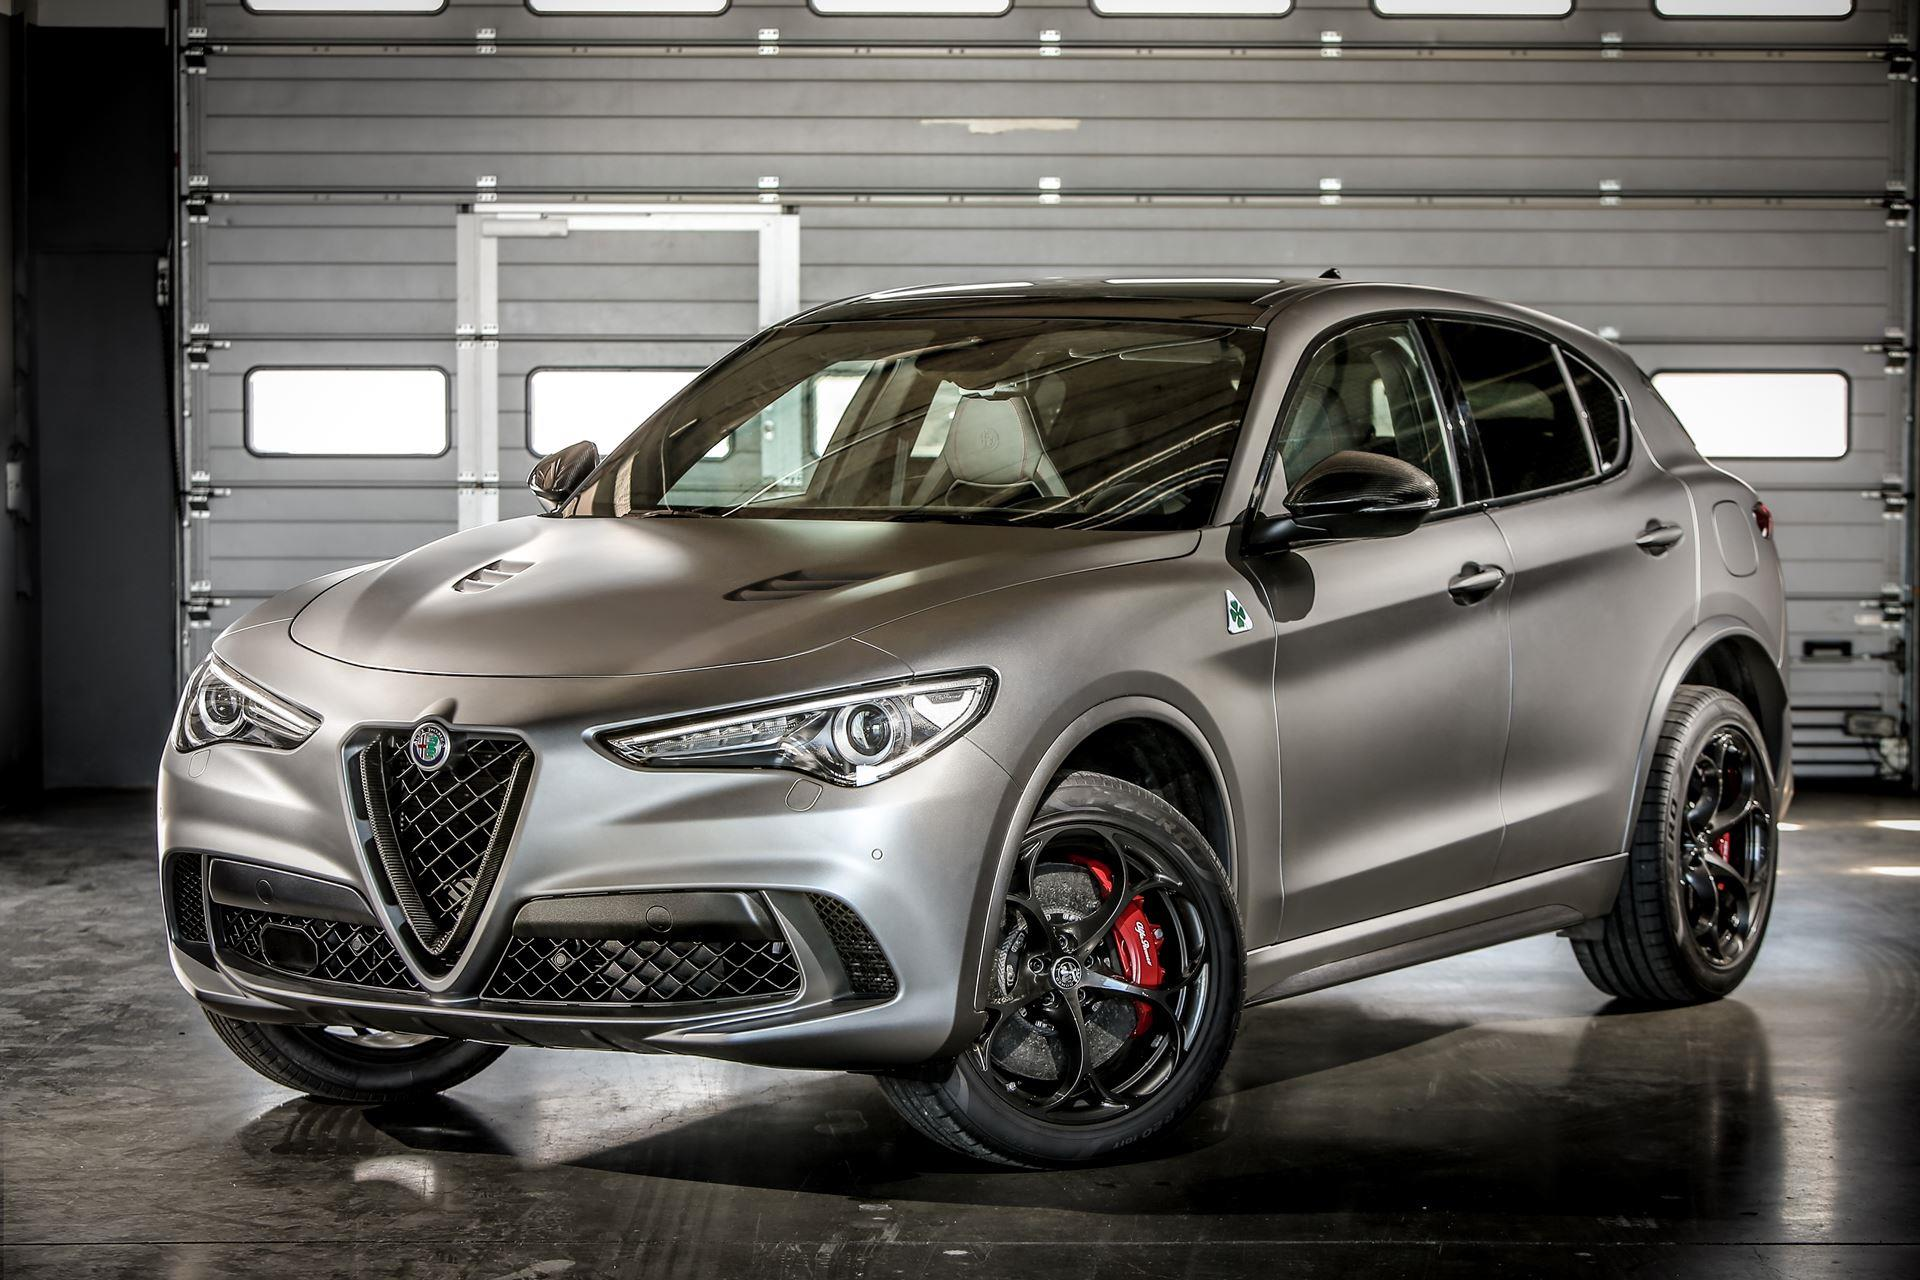 2018 Alfa Romeo Stelvio Quadrifoglio NRING Wallpaper and Image Gallery